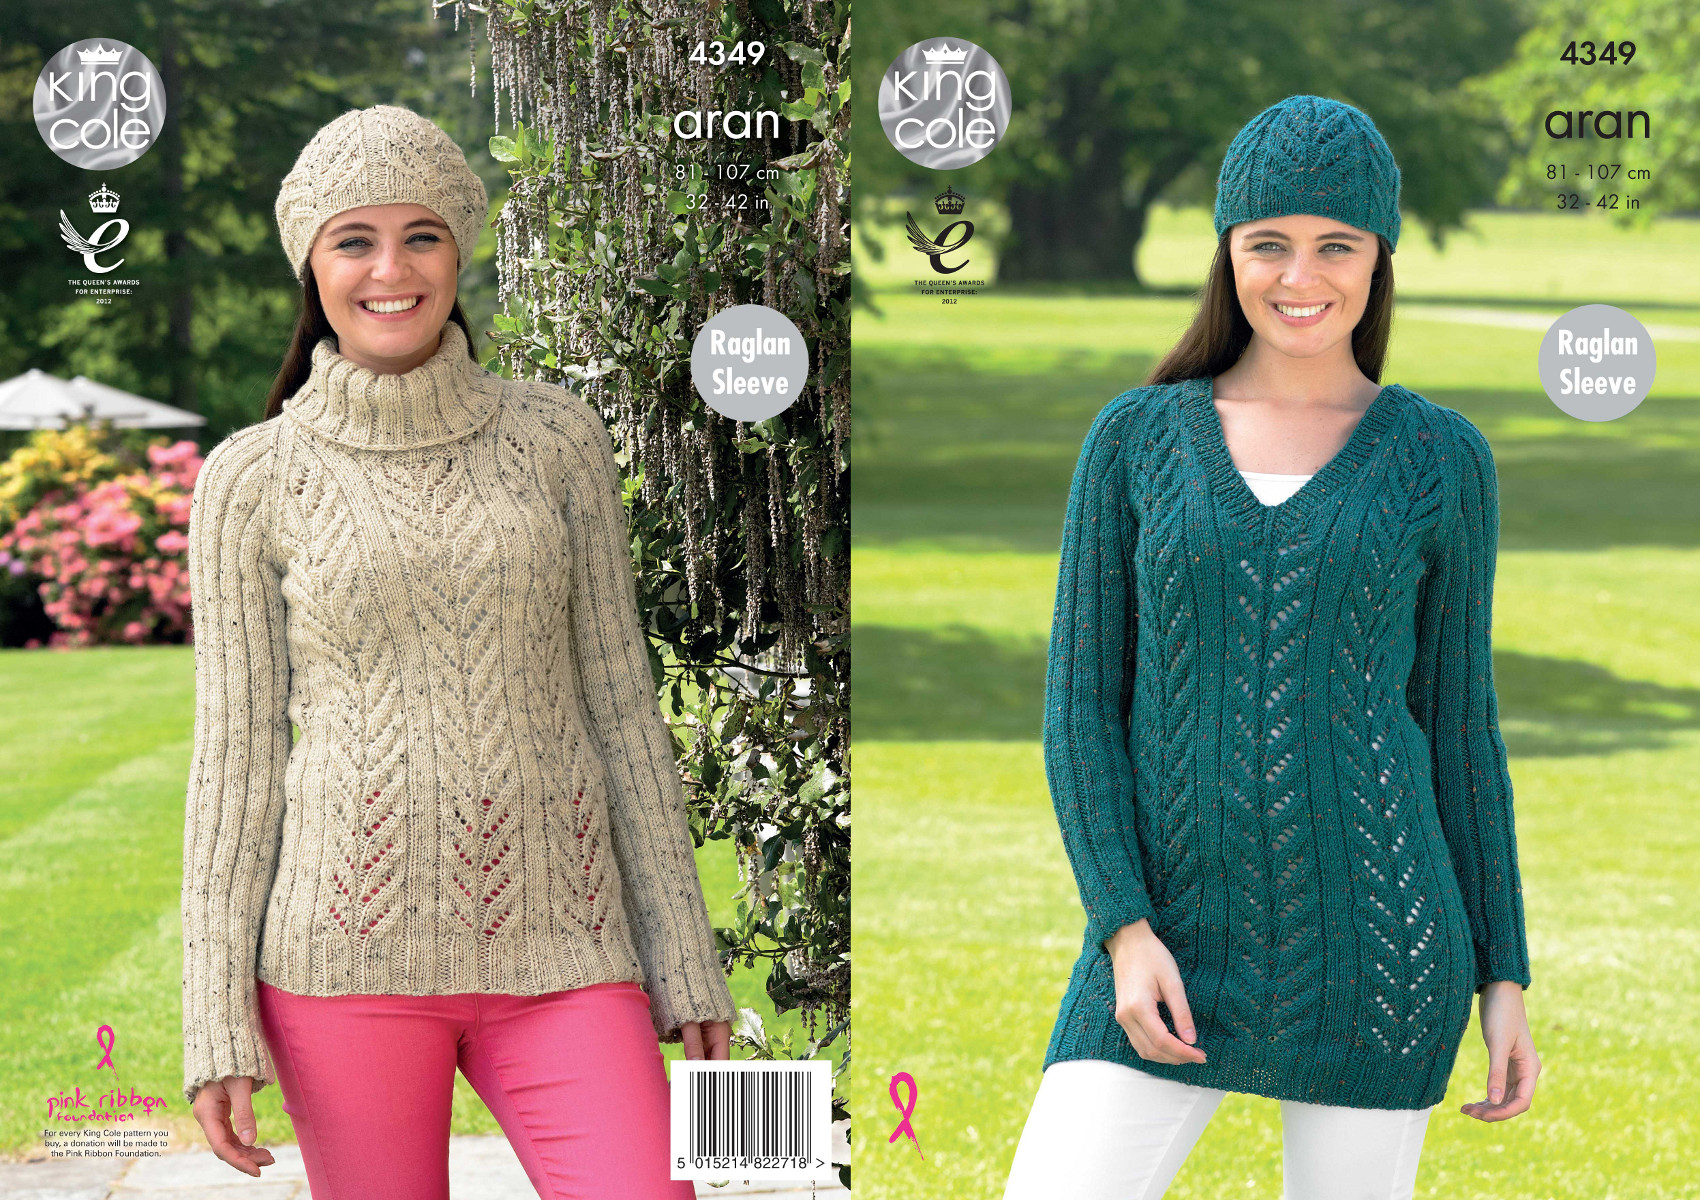 King Cole Ladies Knitting Pattern Womens Sweater Tunic & Hats Fashion Ara...